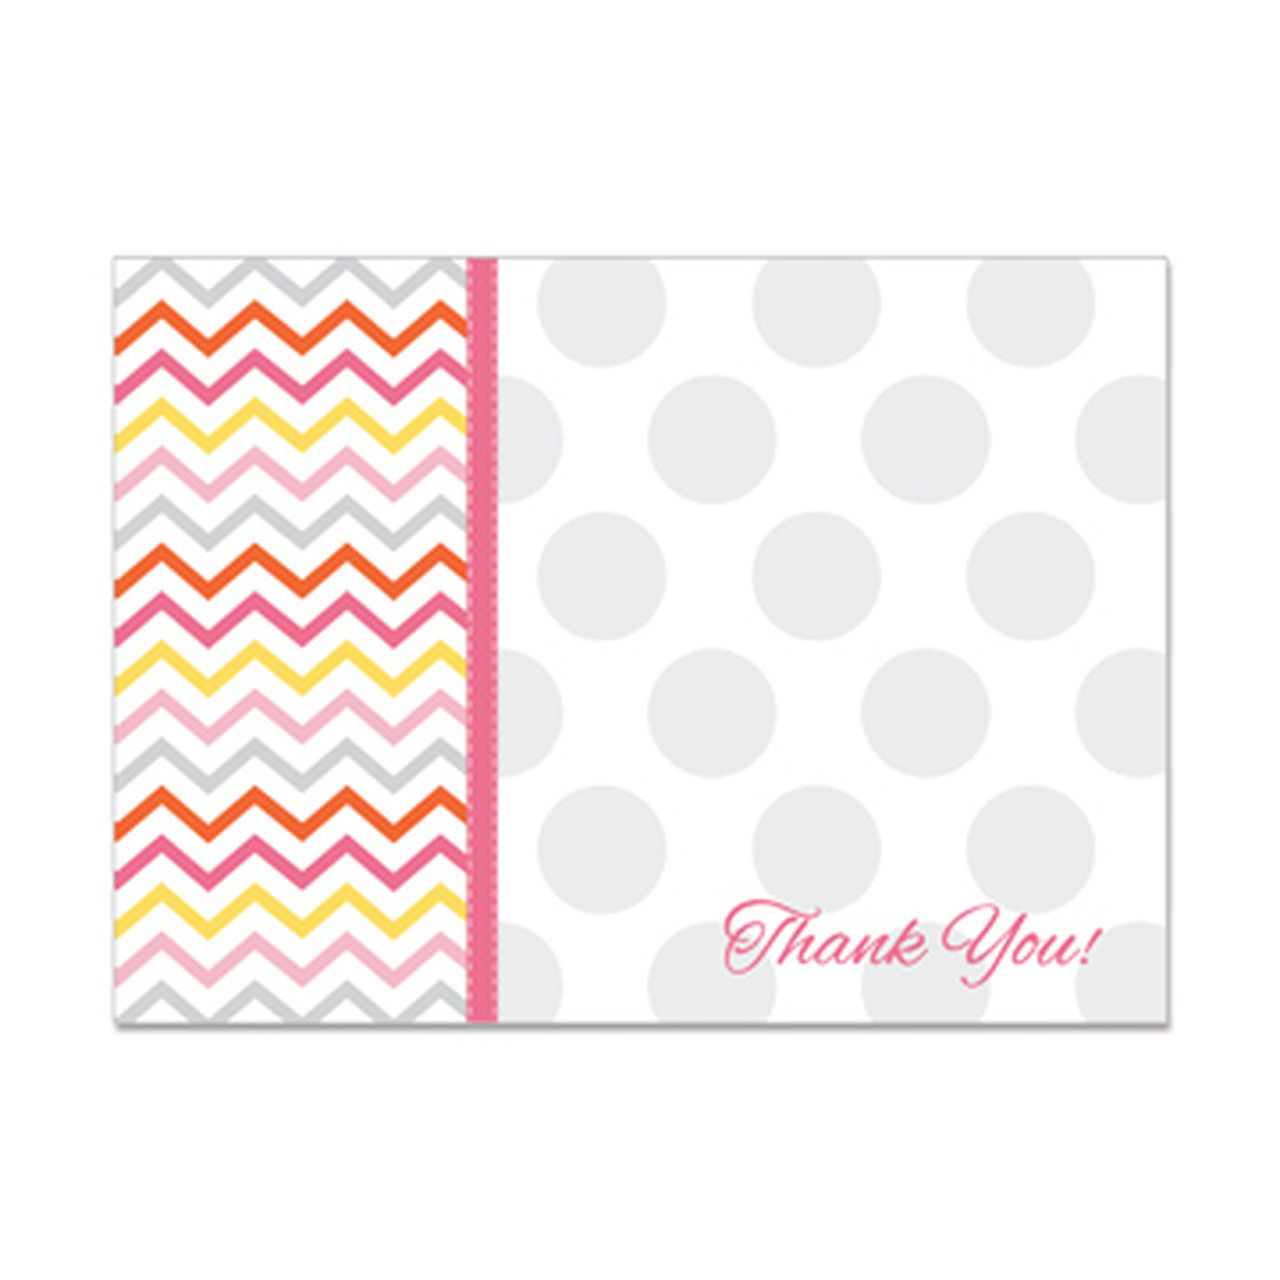 RM - Thank You Greeting Card with Dot Pattern / サンキューカード(ドット柄)【在庫限り】